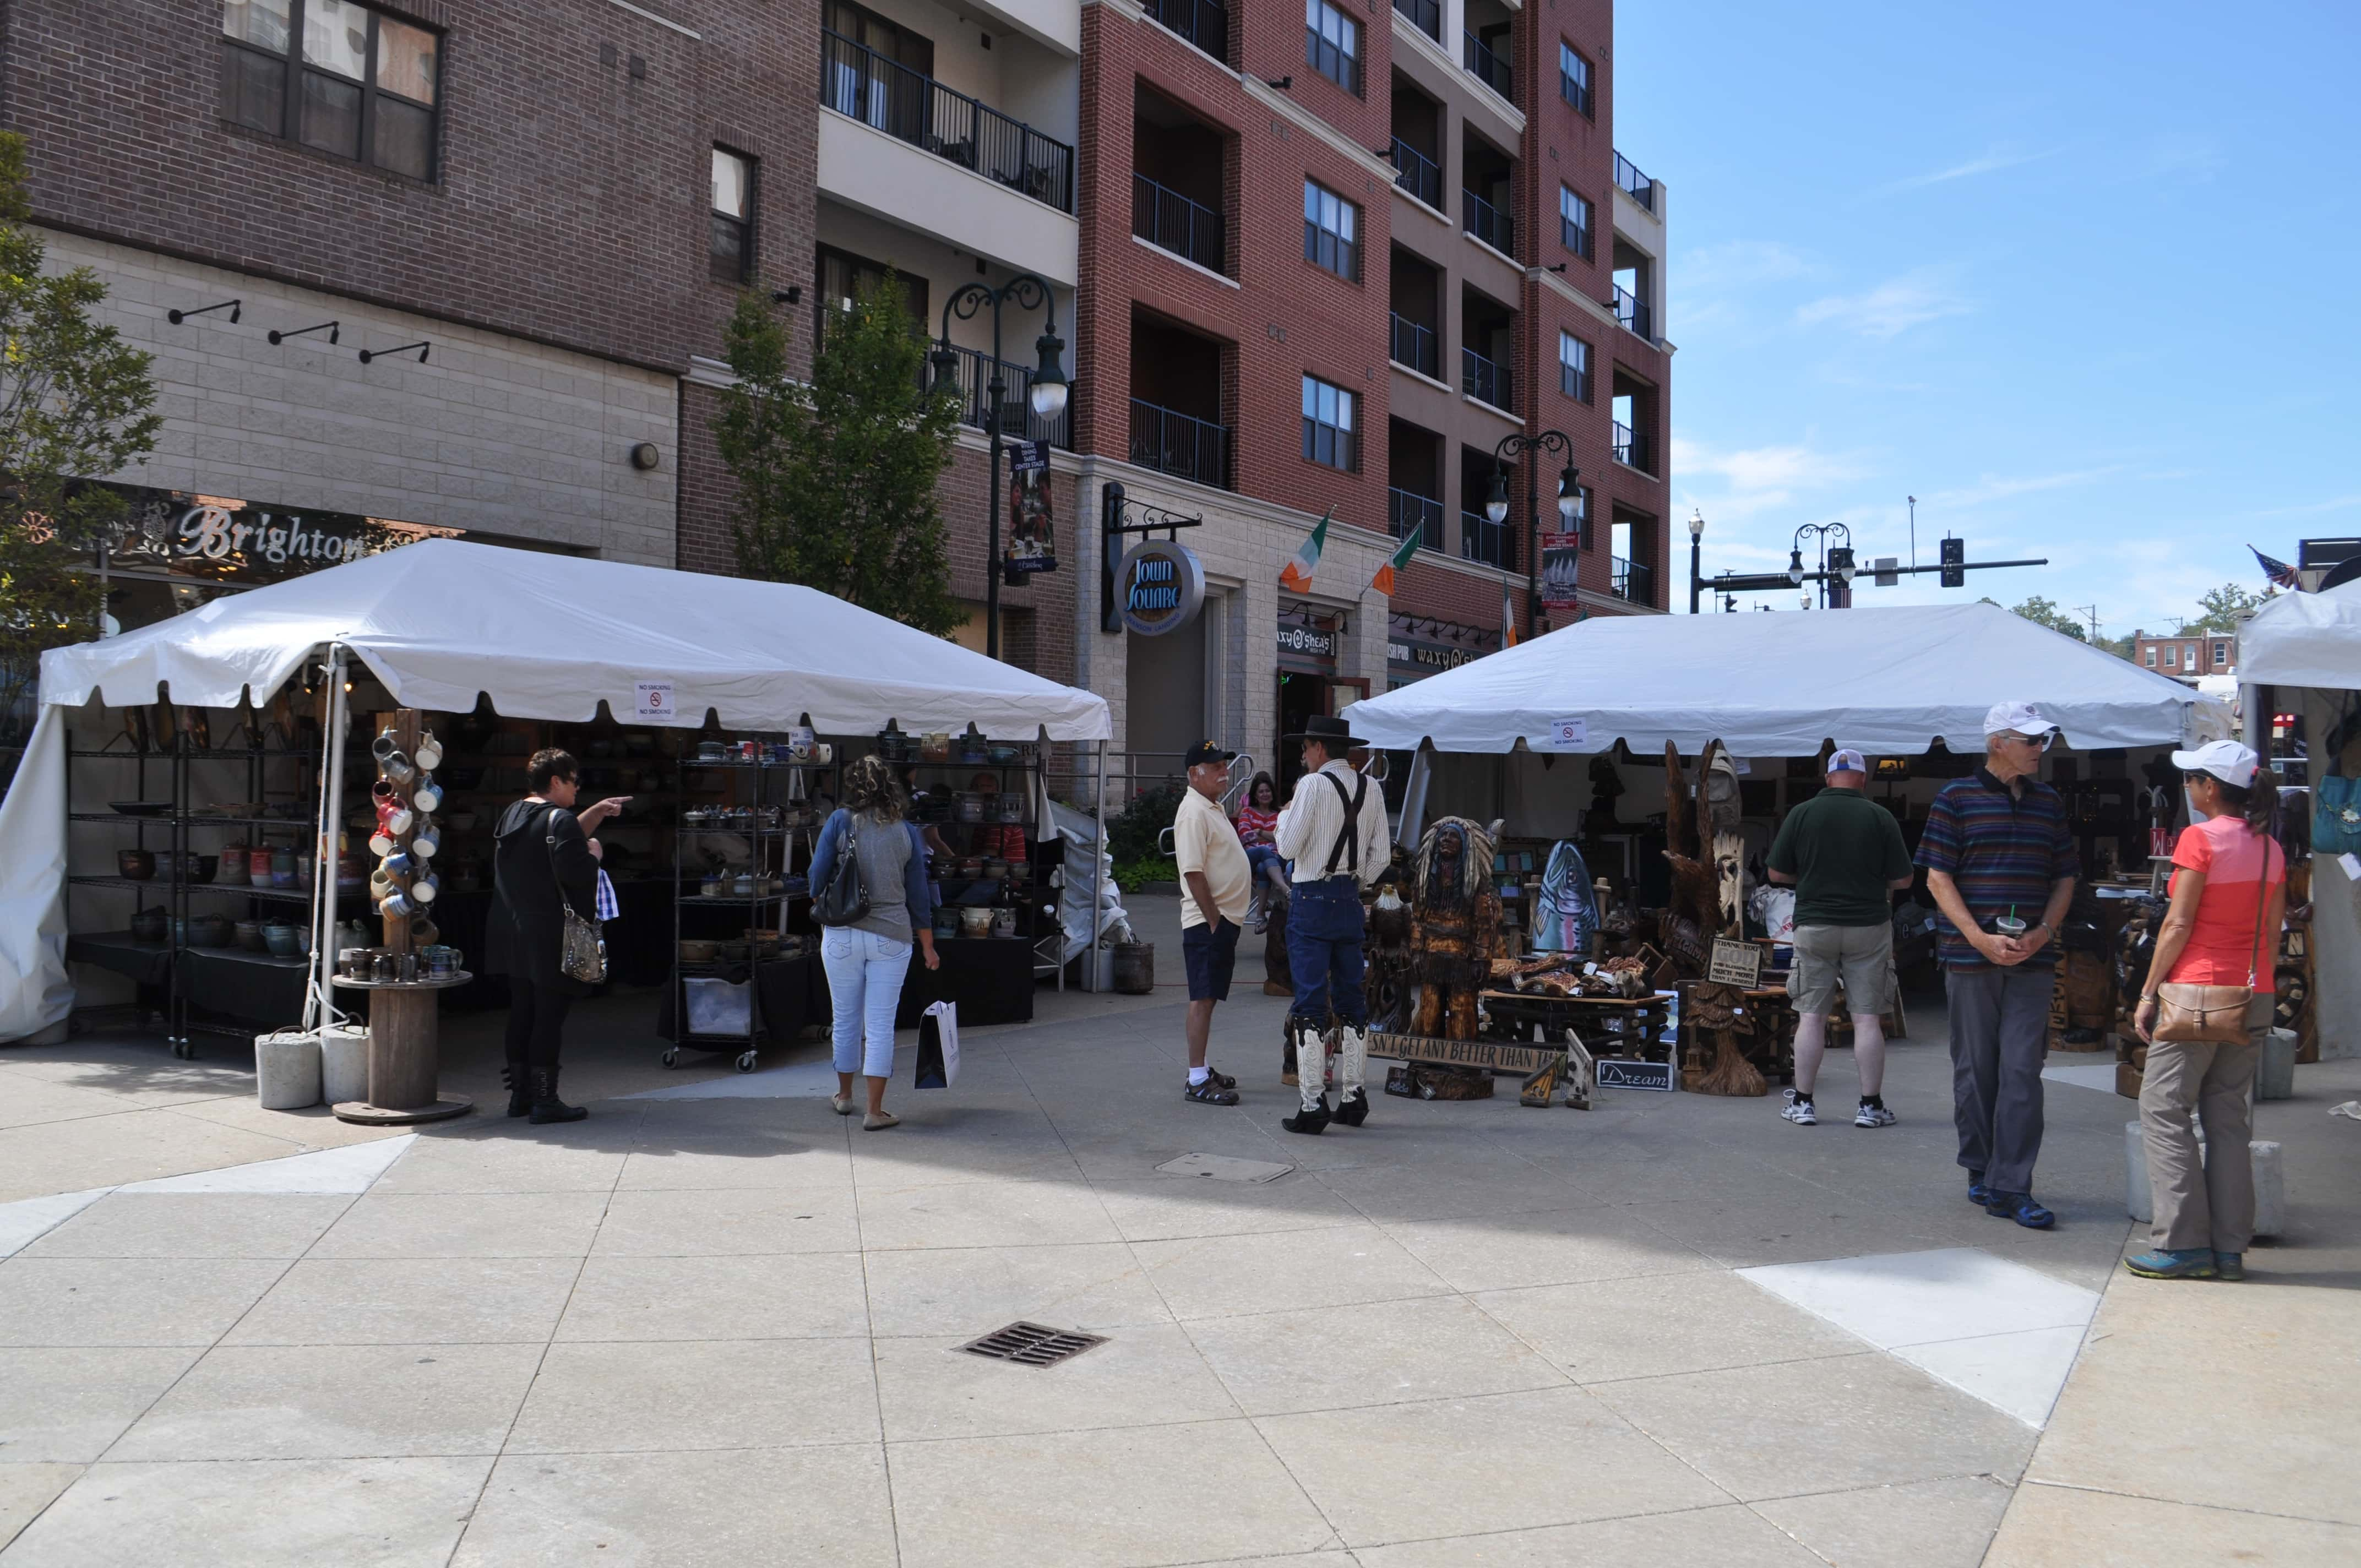 Exclusive Items Displayed at this Saturday's Artisan's Market  #1561B6